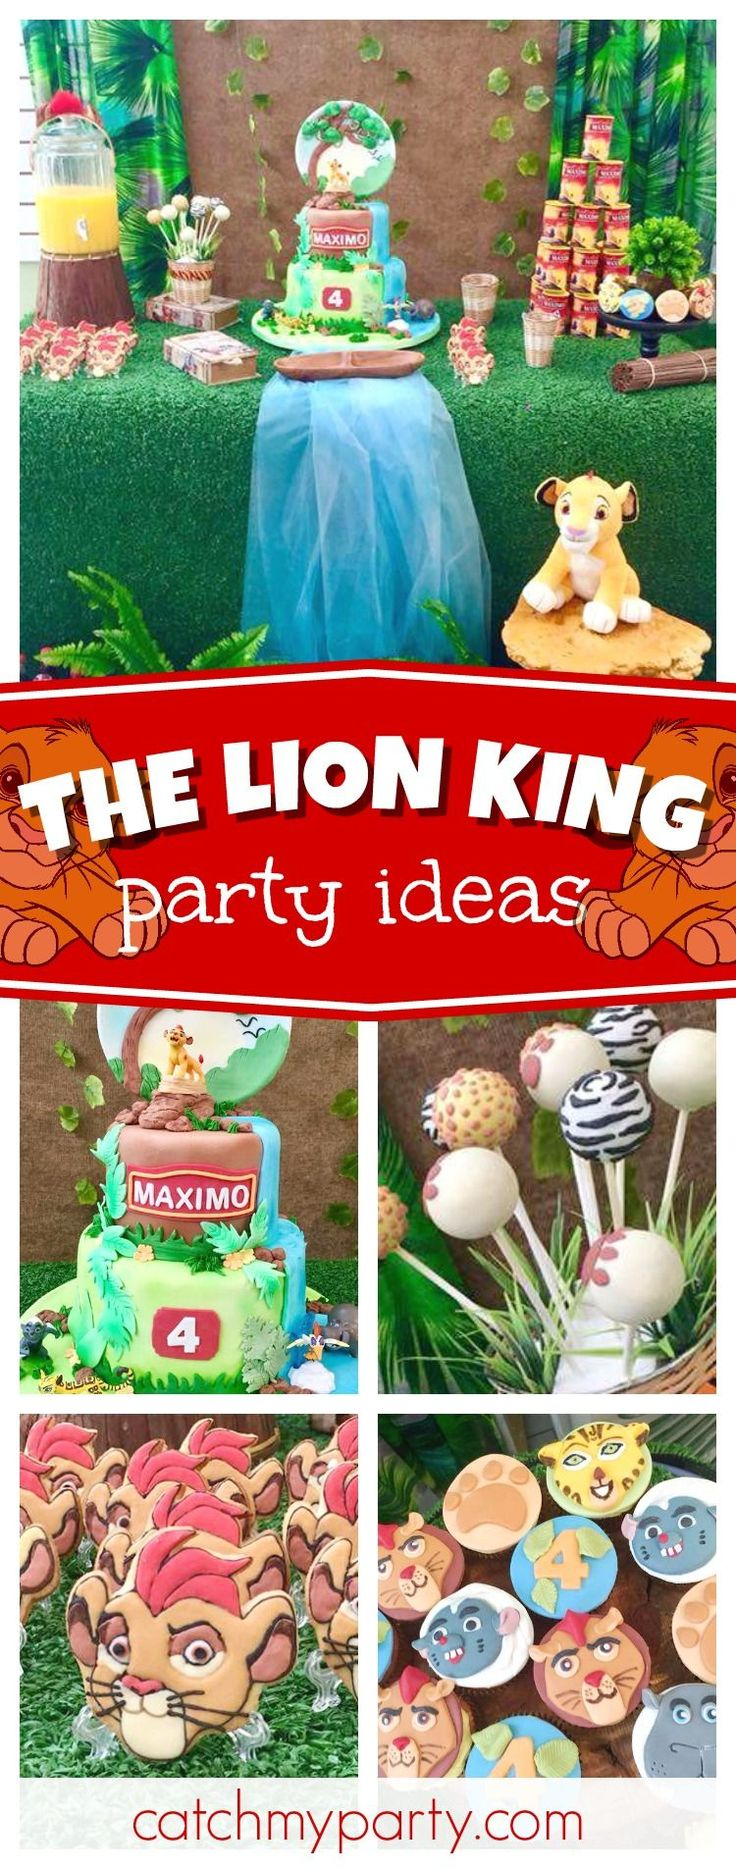 Check out this awesome Lion King birthday party ! The birthday cake is incredible!! See more party ideas and share yours at CatchMyParty.com #partyideas #catchmyparty #thelionking #safari #animals #lion